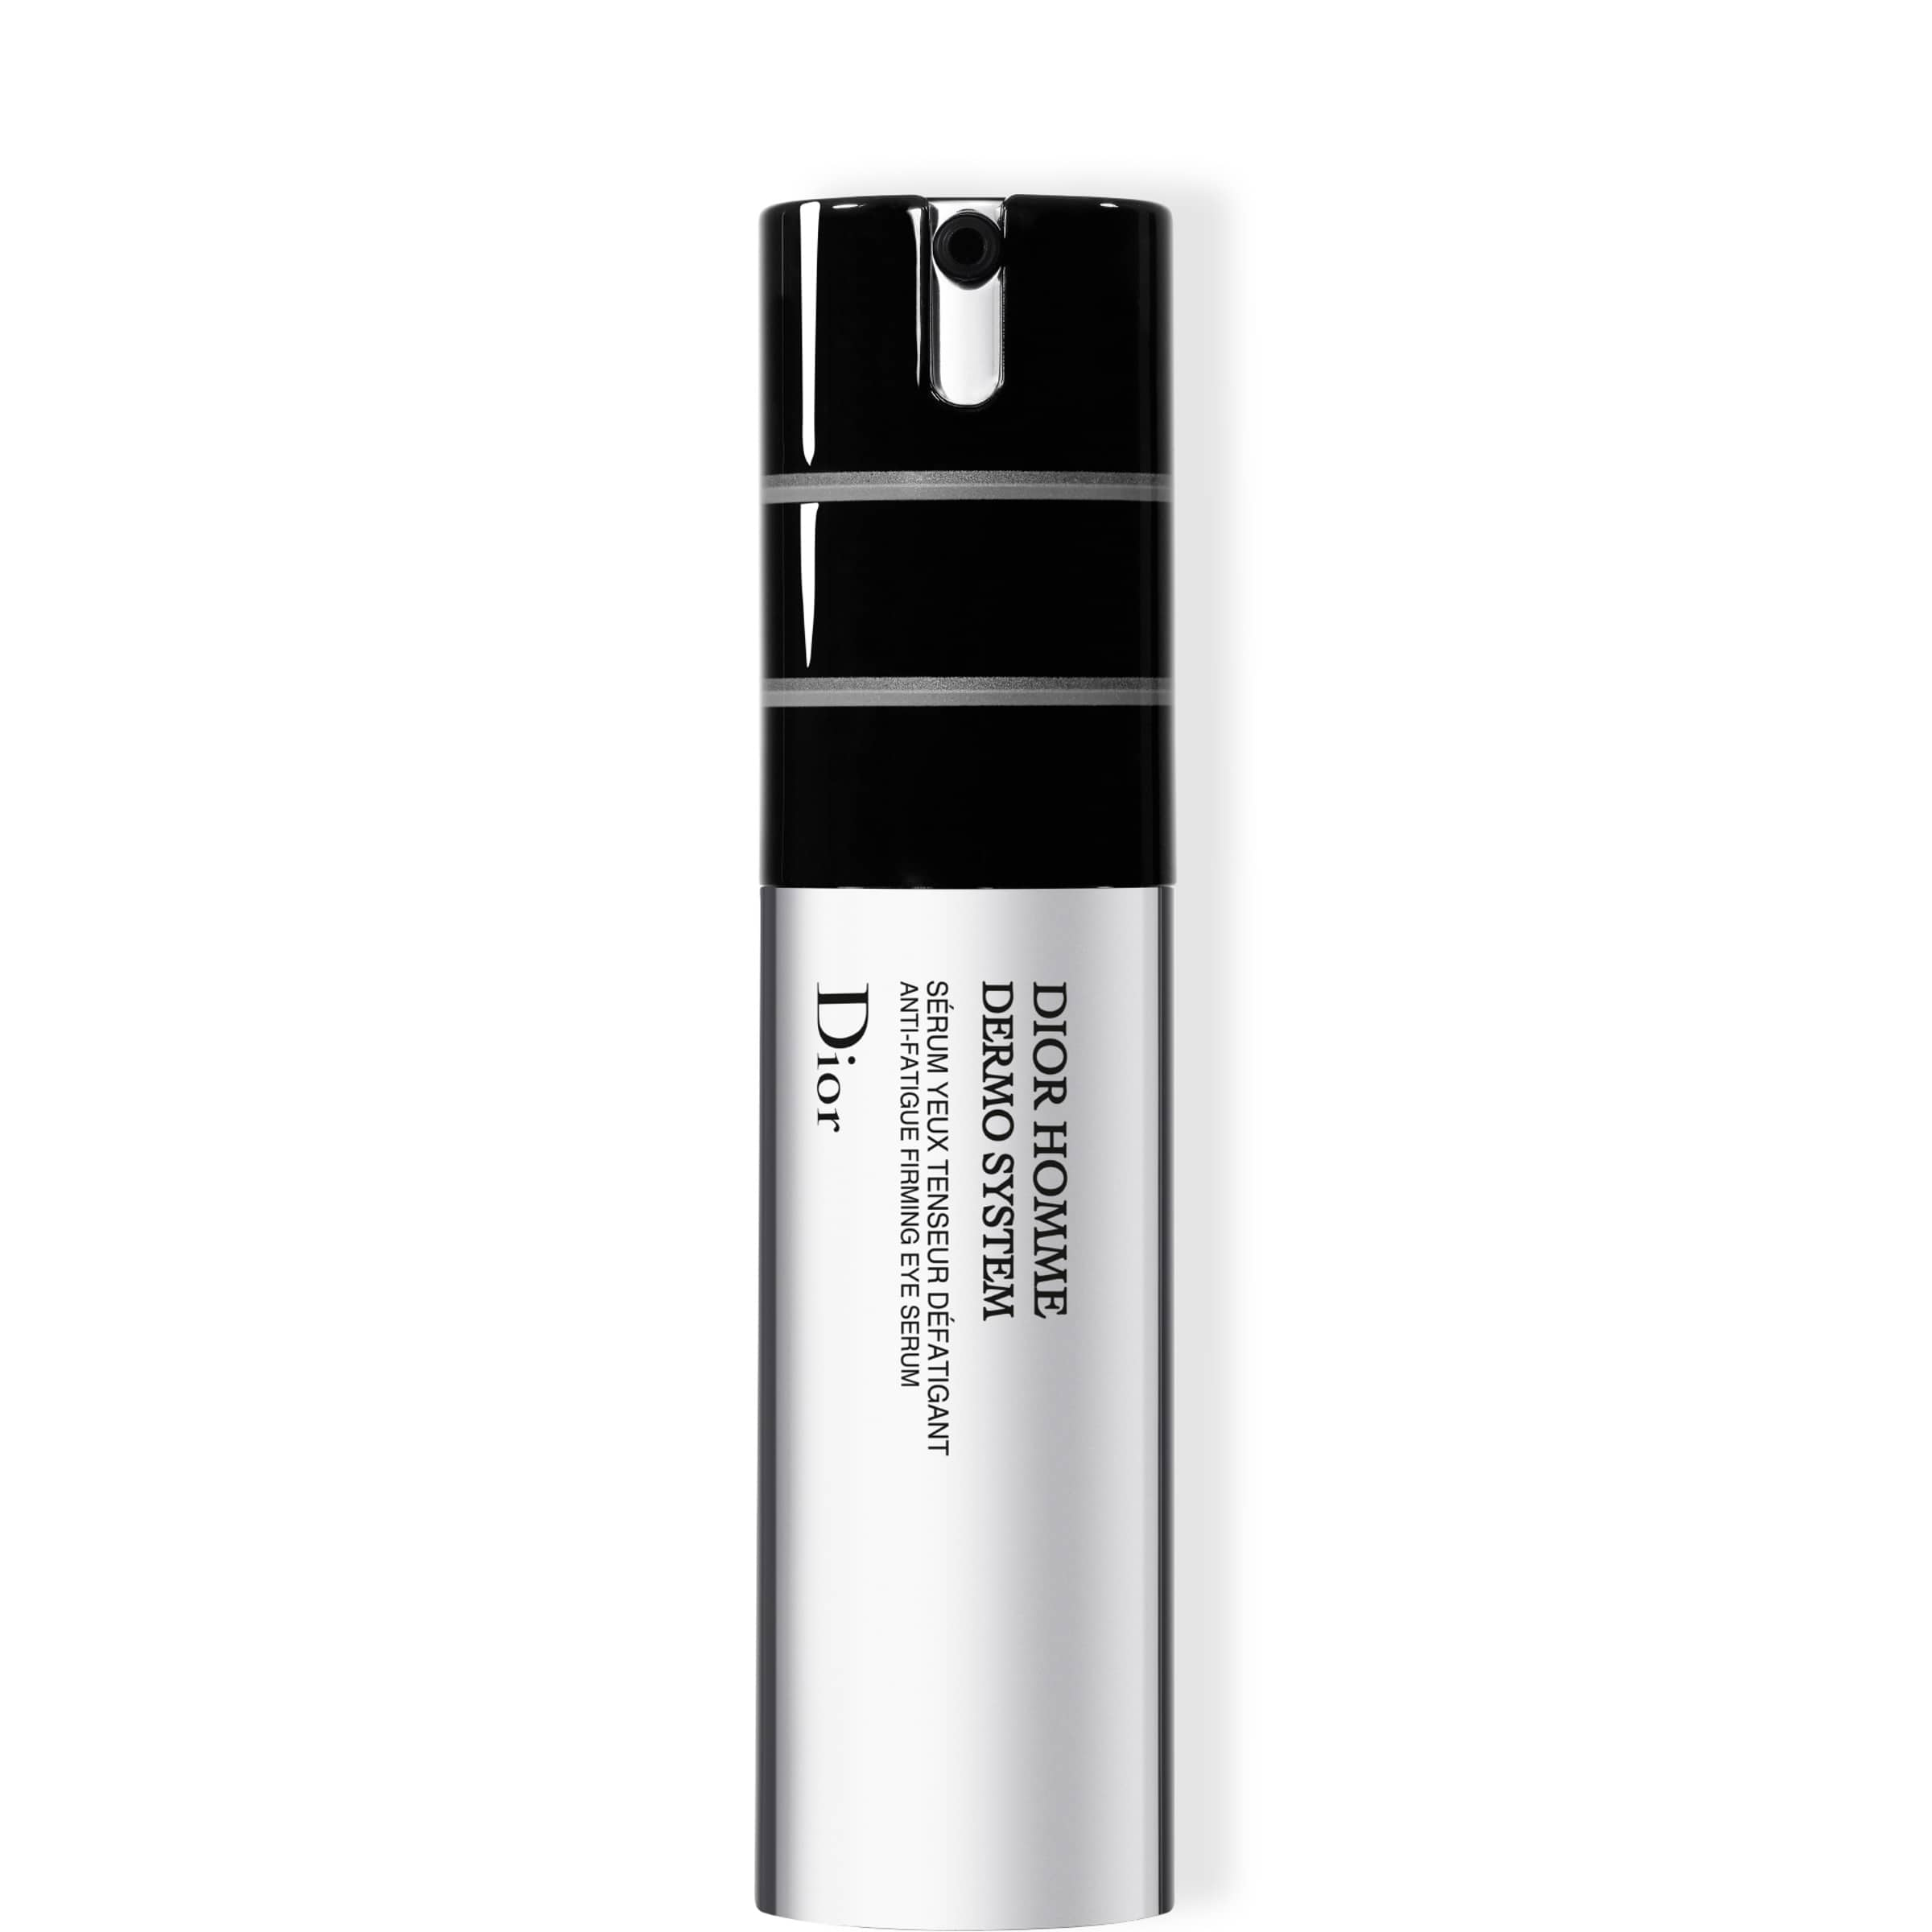 Dior Homme Dermo System Firming Eye Serum 15ml